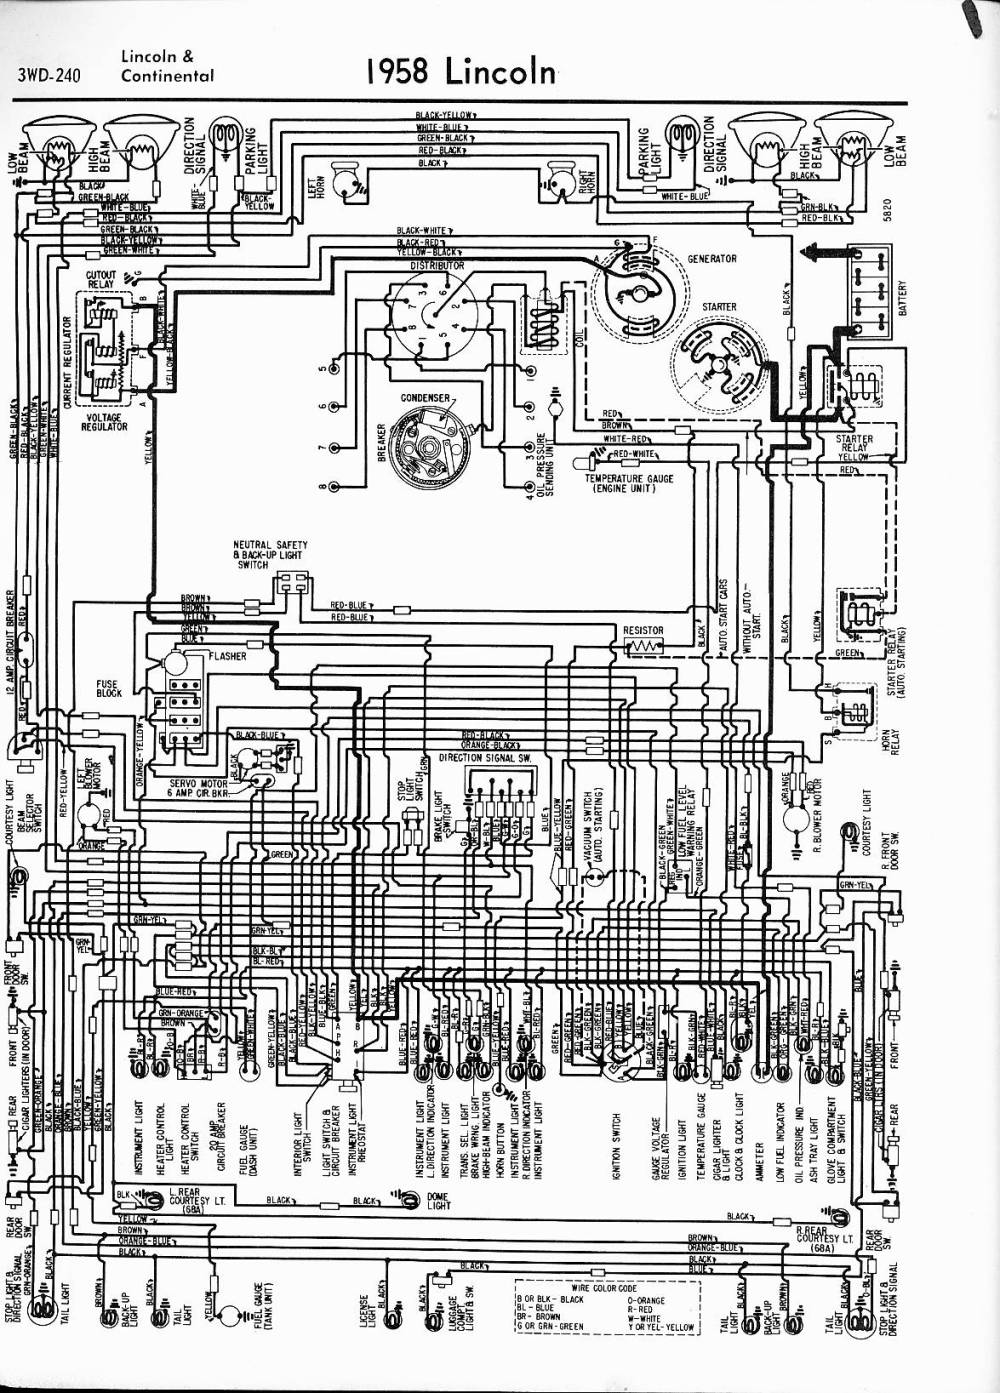 medium resolution of 1966 lincoln continental wiring diagrams wiring library rh 63 skriptoase de 1969 lincoln continental wiring diagram